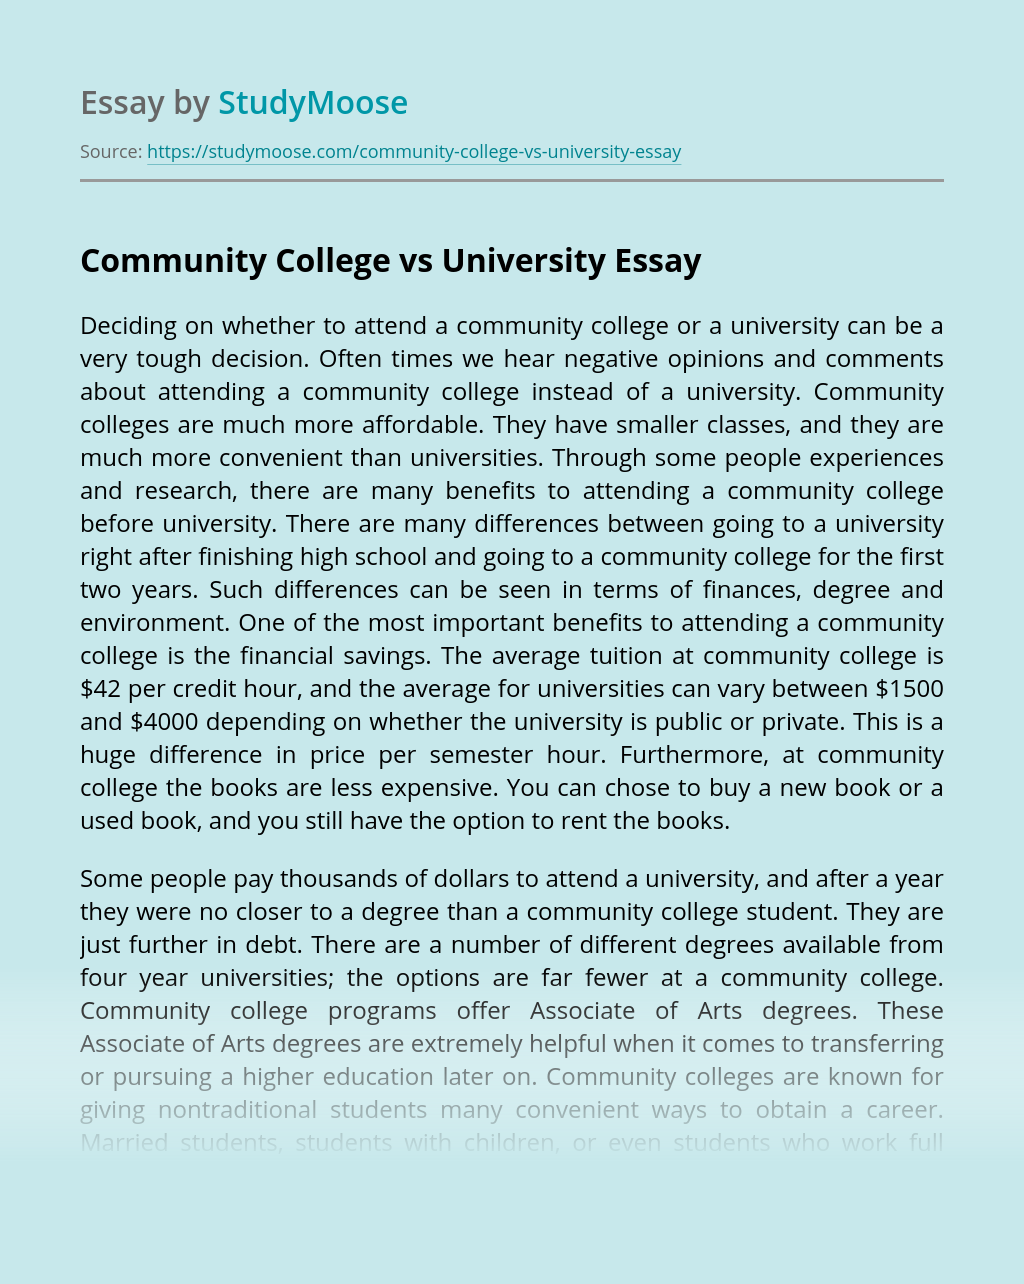 Community College vs University